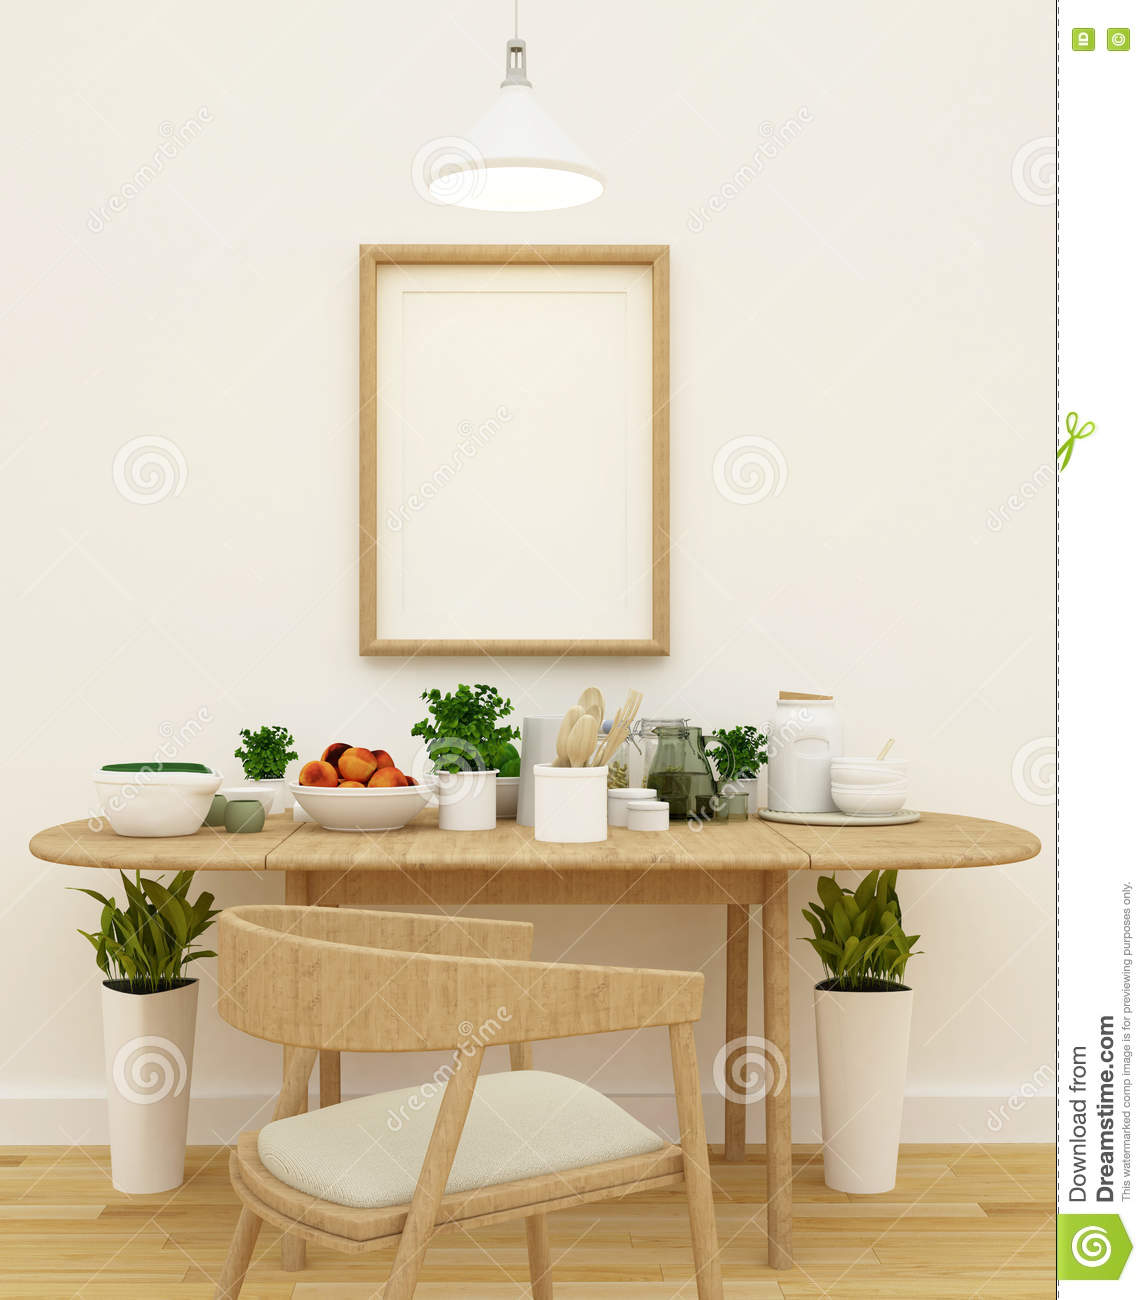 Kitchen Set In Pantry Area And Frame For Artwork 3d Rendering